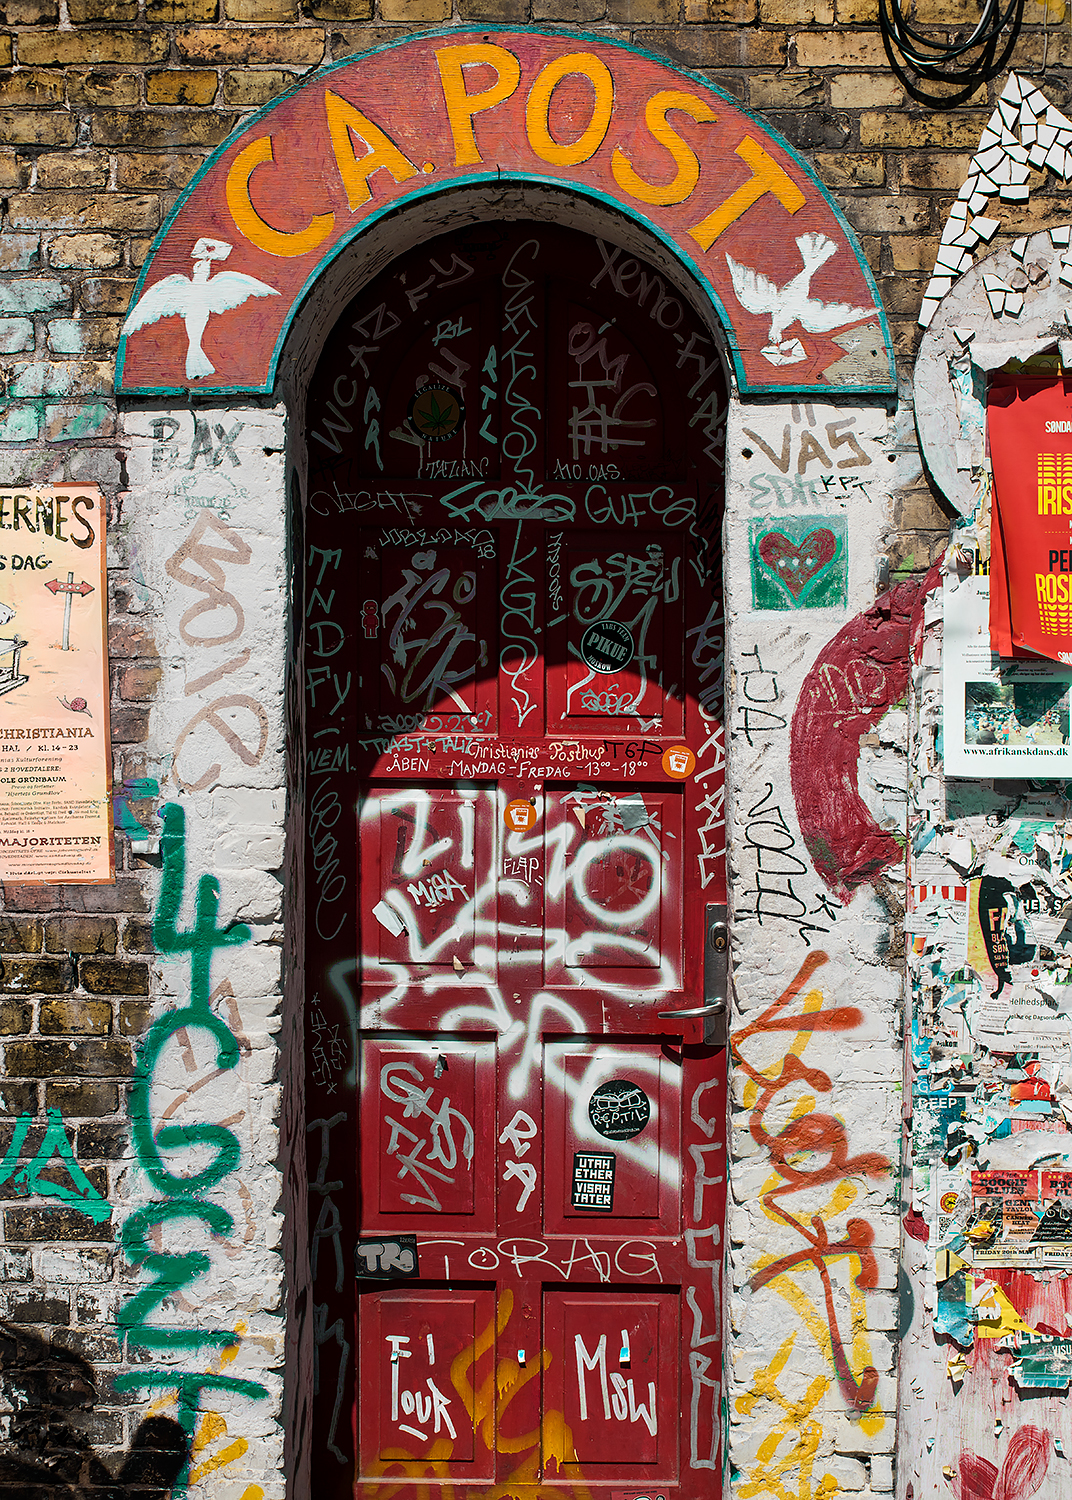 Christiania post office